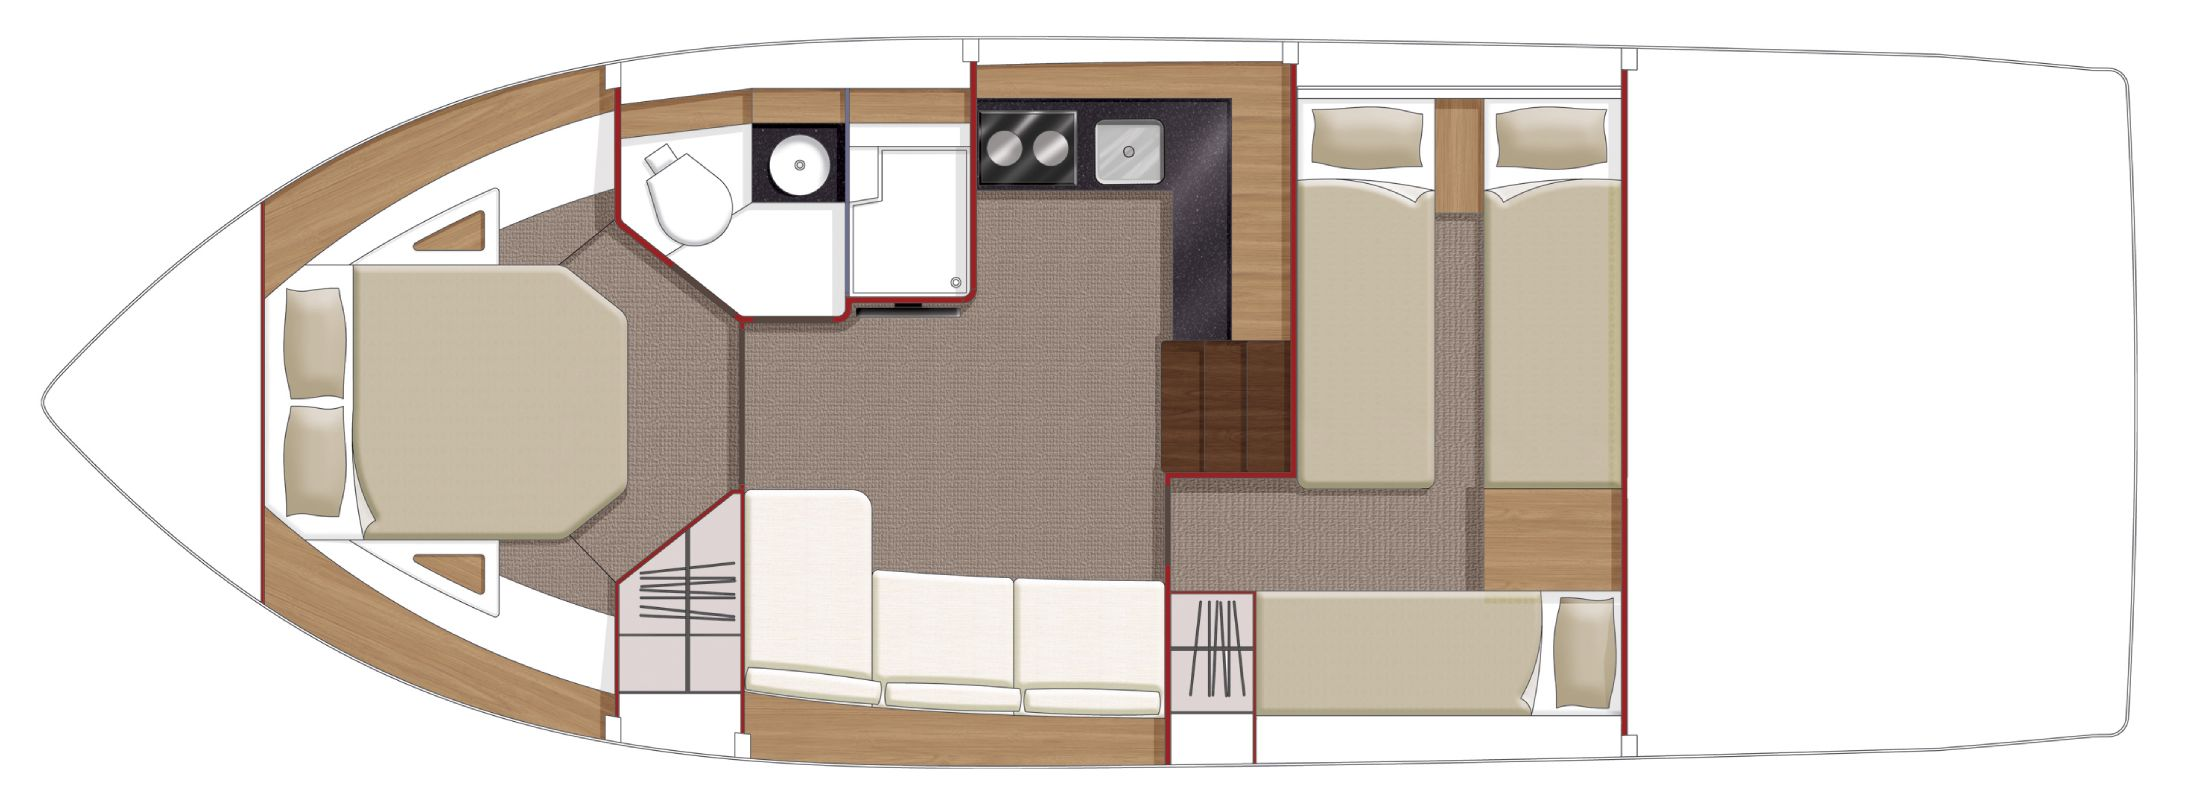 Manufacturer Provided Image: Sealine International SC35 Layout Plan